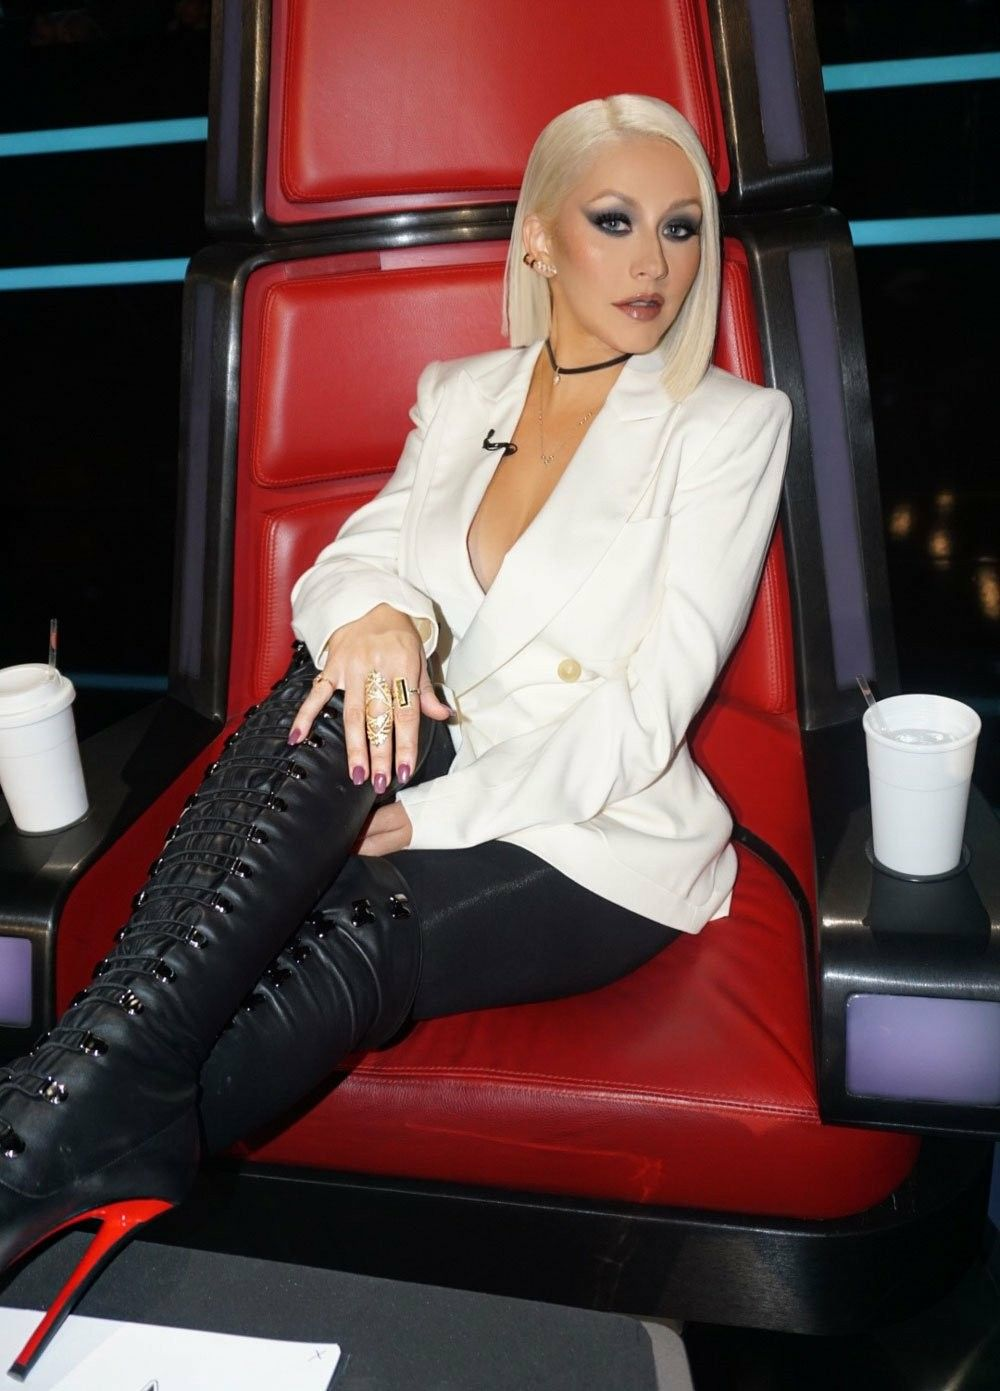 Pin by Tray on that's good   Christina aguilera, Fashion